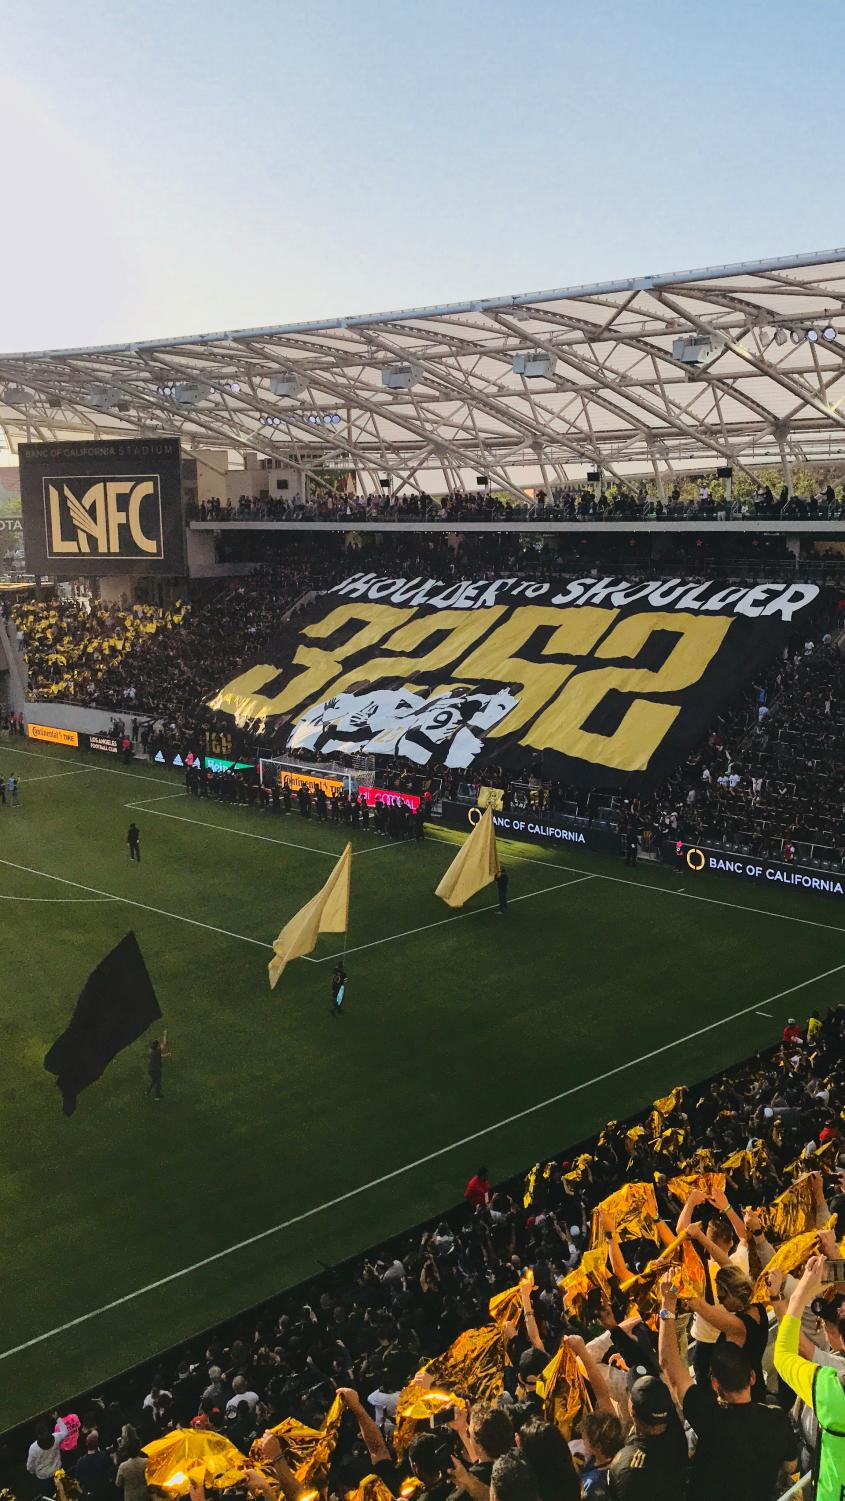 The opening of Banc of California Stadium included tifos from the supporters section.